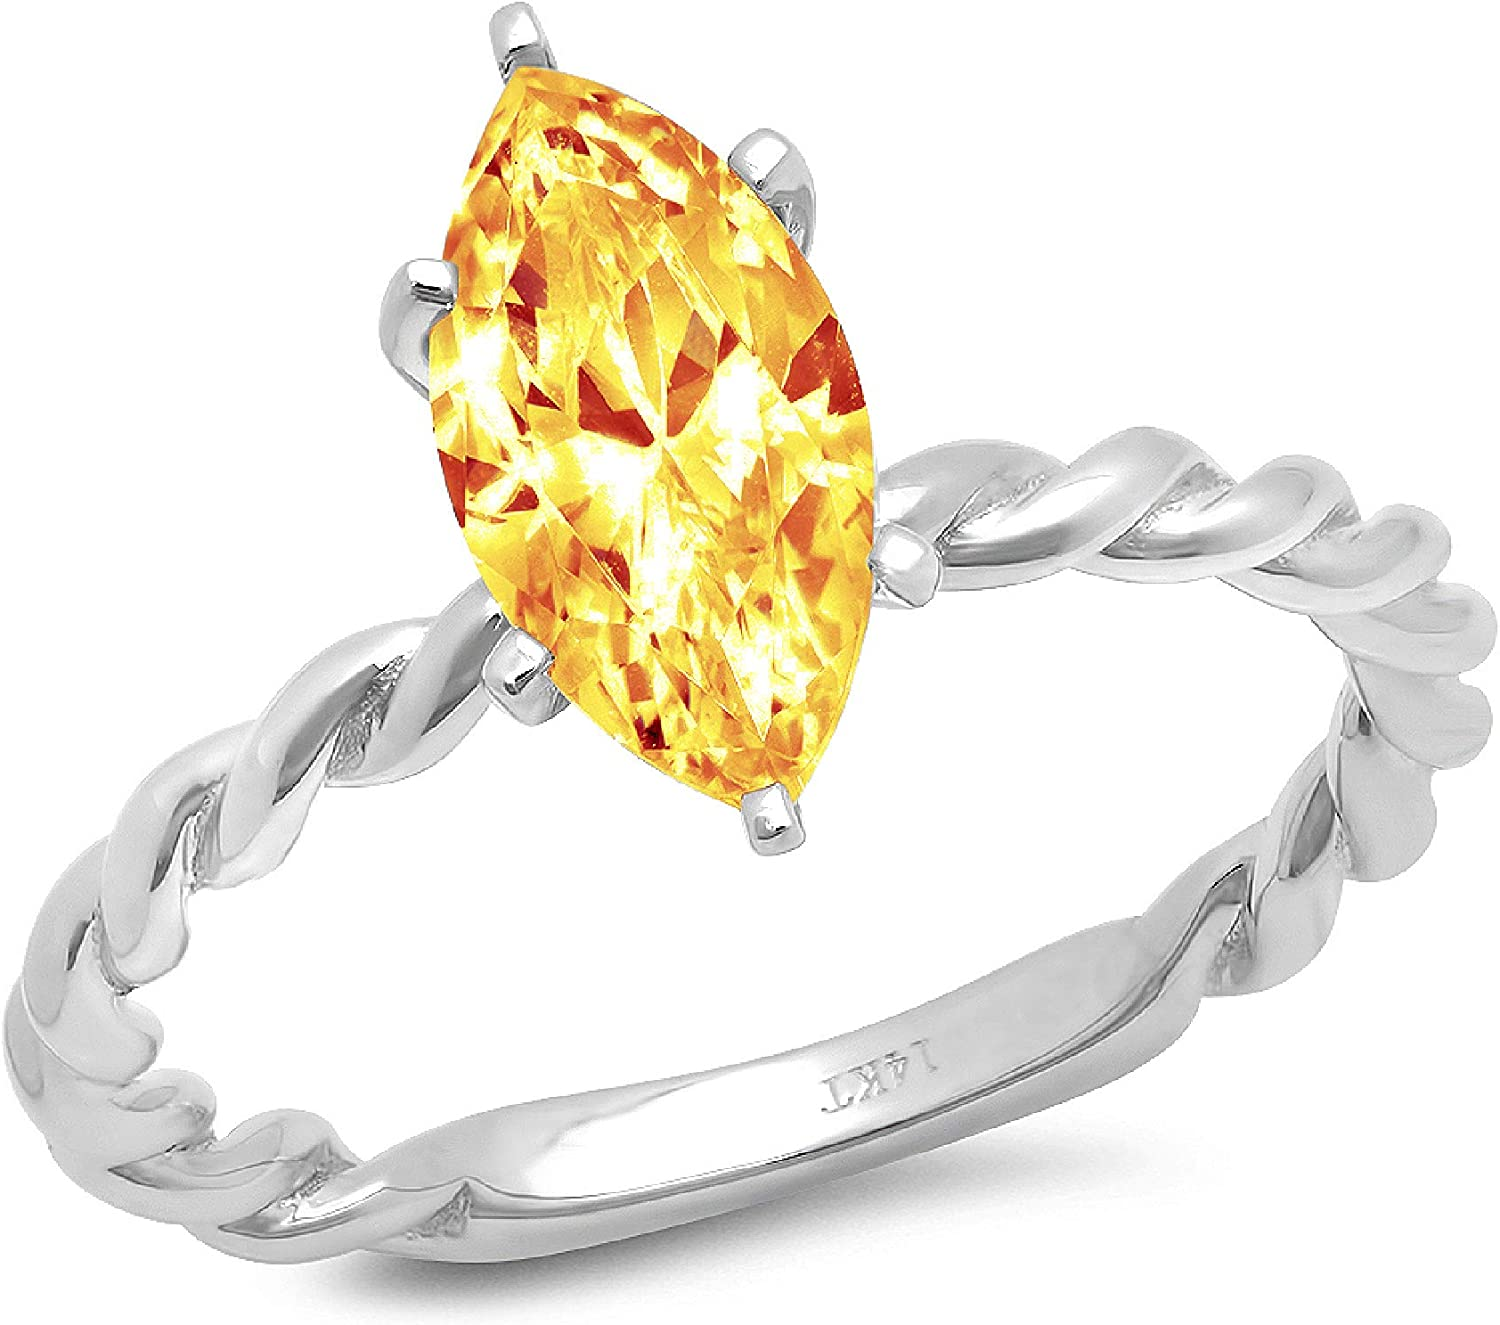 1.9ct Marquise Cut Solitaire Rope Twisted Knot Natural Yellow Citrine Ideal VVS1 Engagement Wedding Bridal Promise Anniversary Ring Solid 14k White Gold for Women